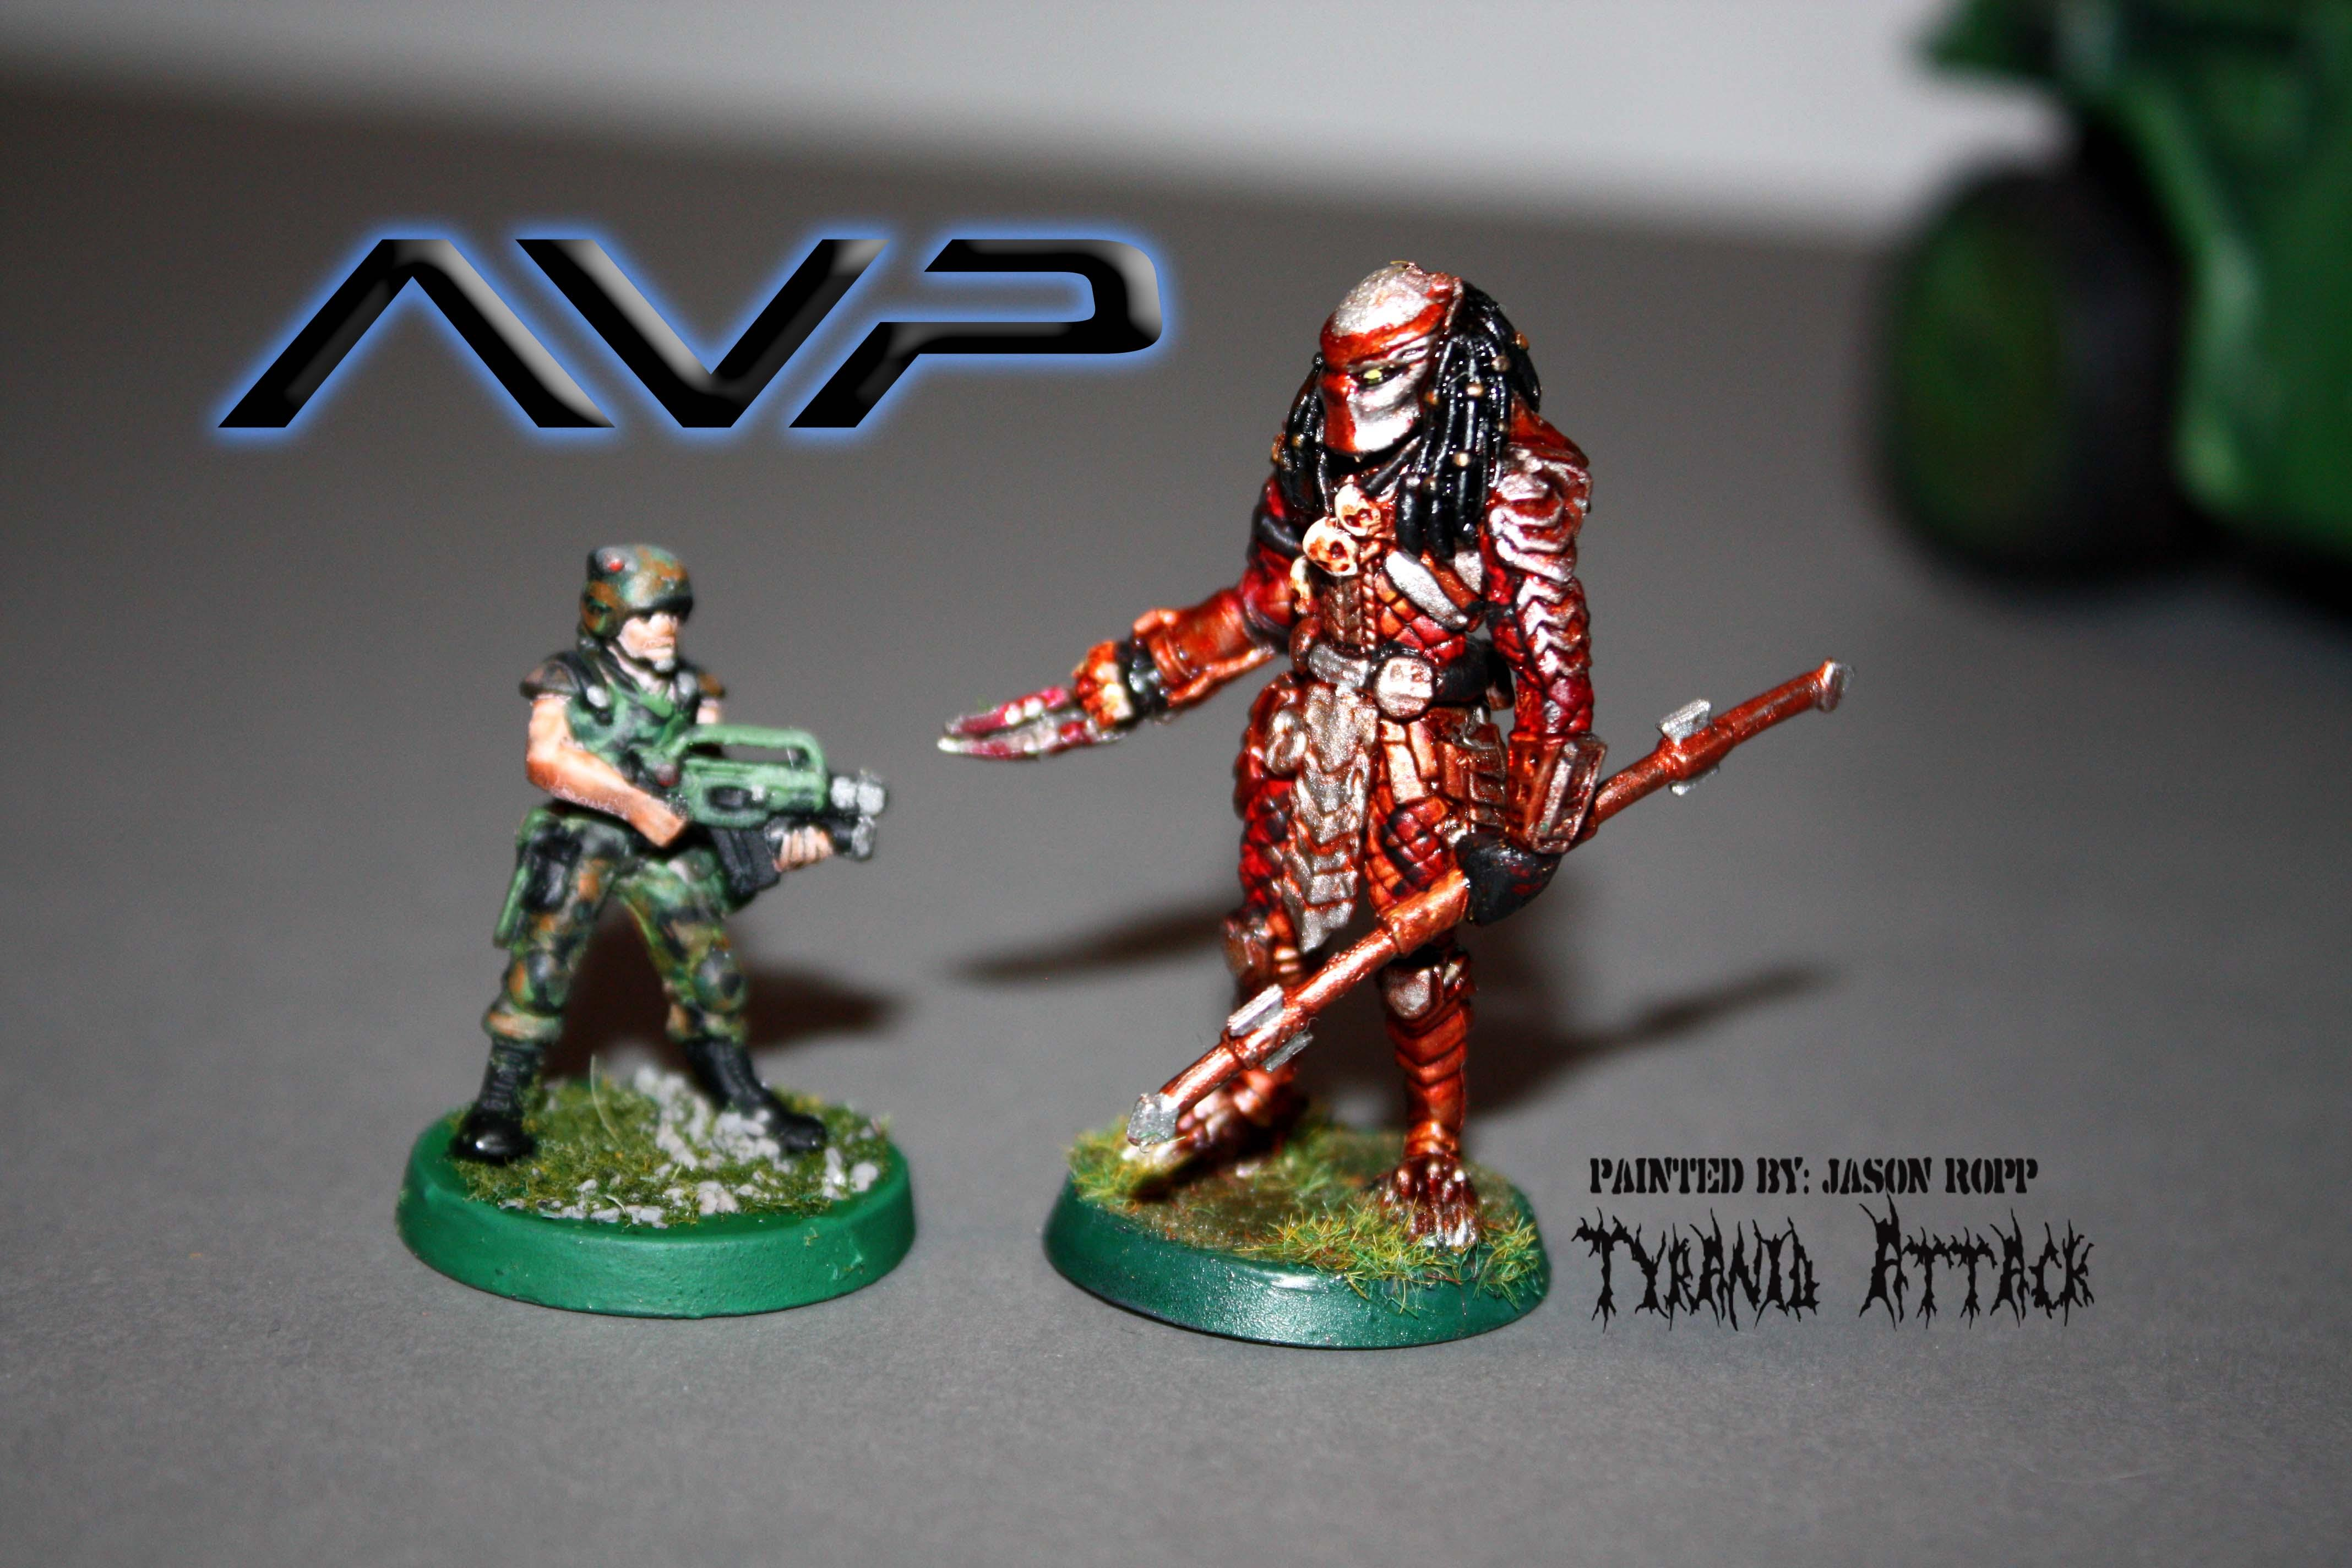 28mm, Alien, Alienids, Aliens, Army, Avp, Bio-suit, Colonial Marine, Dogs Of War, Dutch, Em4, Engineer, Game, Get To De Choppa, Hasslefree, Horrorclix, Hurn, Leading Edge, Miniatures, Movie, Predator, Prodos, Prometheus, Ral Partha, Rogue, Sceanery, Space Jockey, Space Marines, The Thing, Tyranids, War, Warhammer 40,000, Warhammer Fantasy